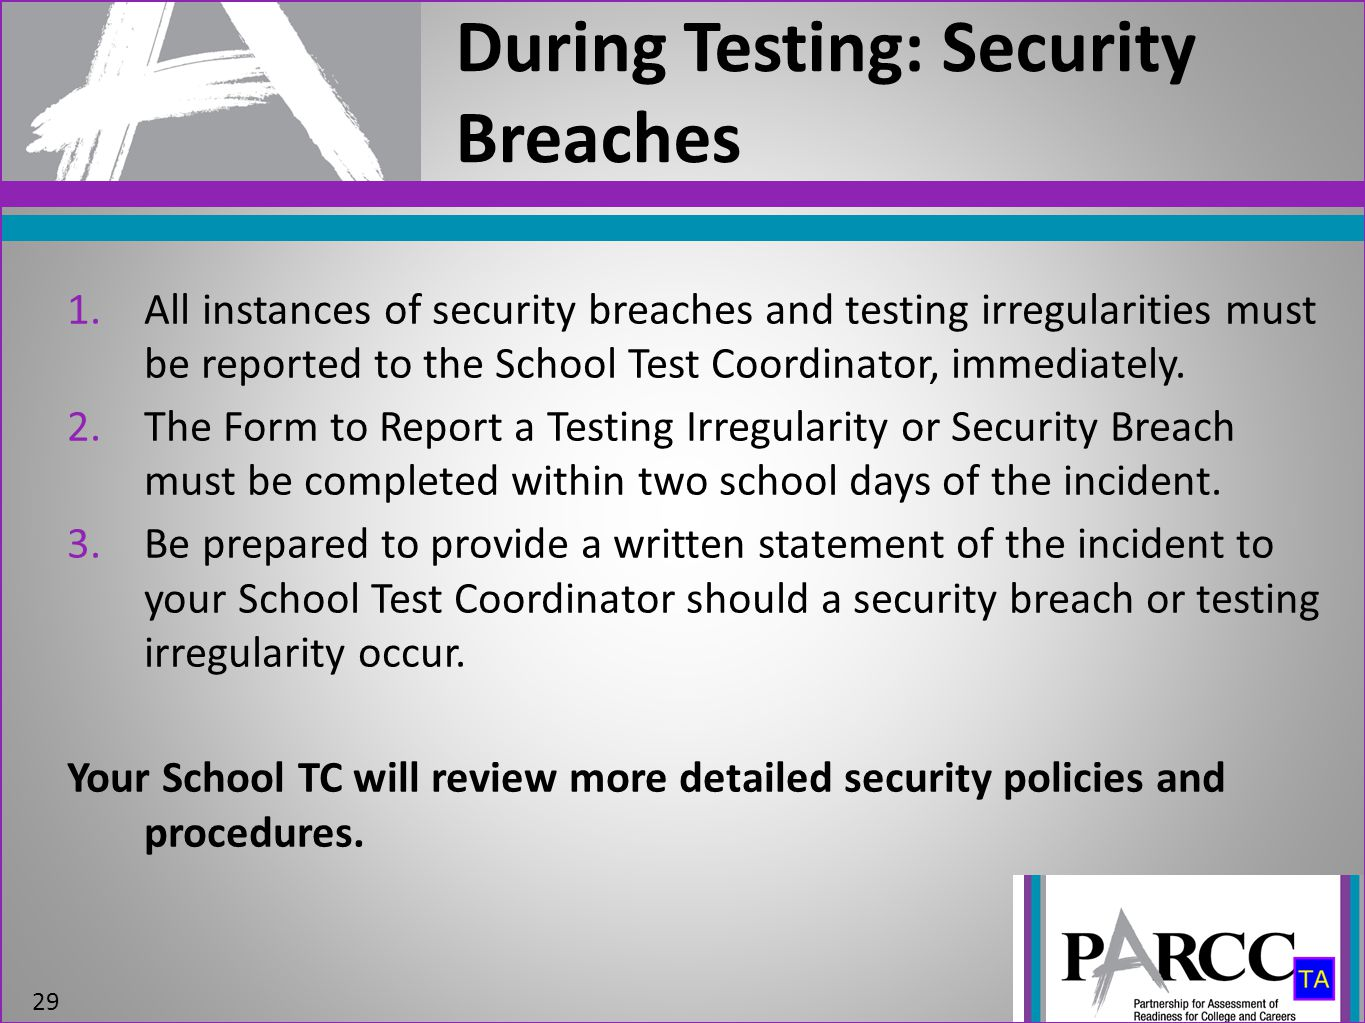 During Testing: Security Breaches